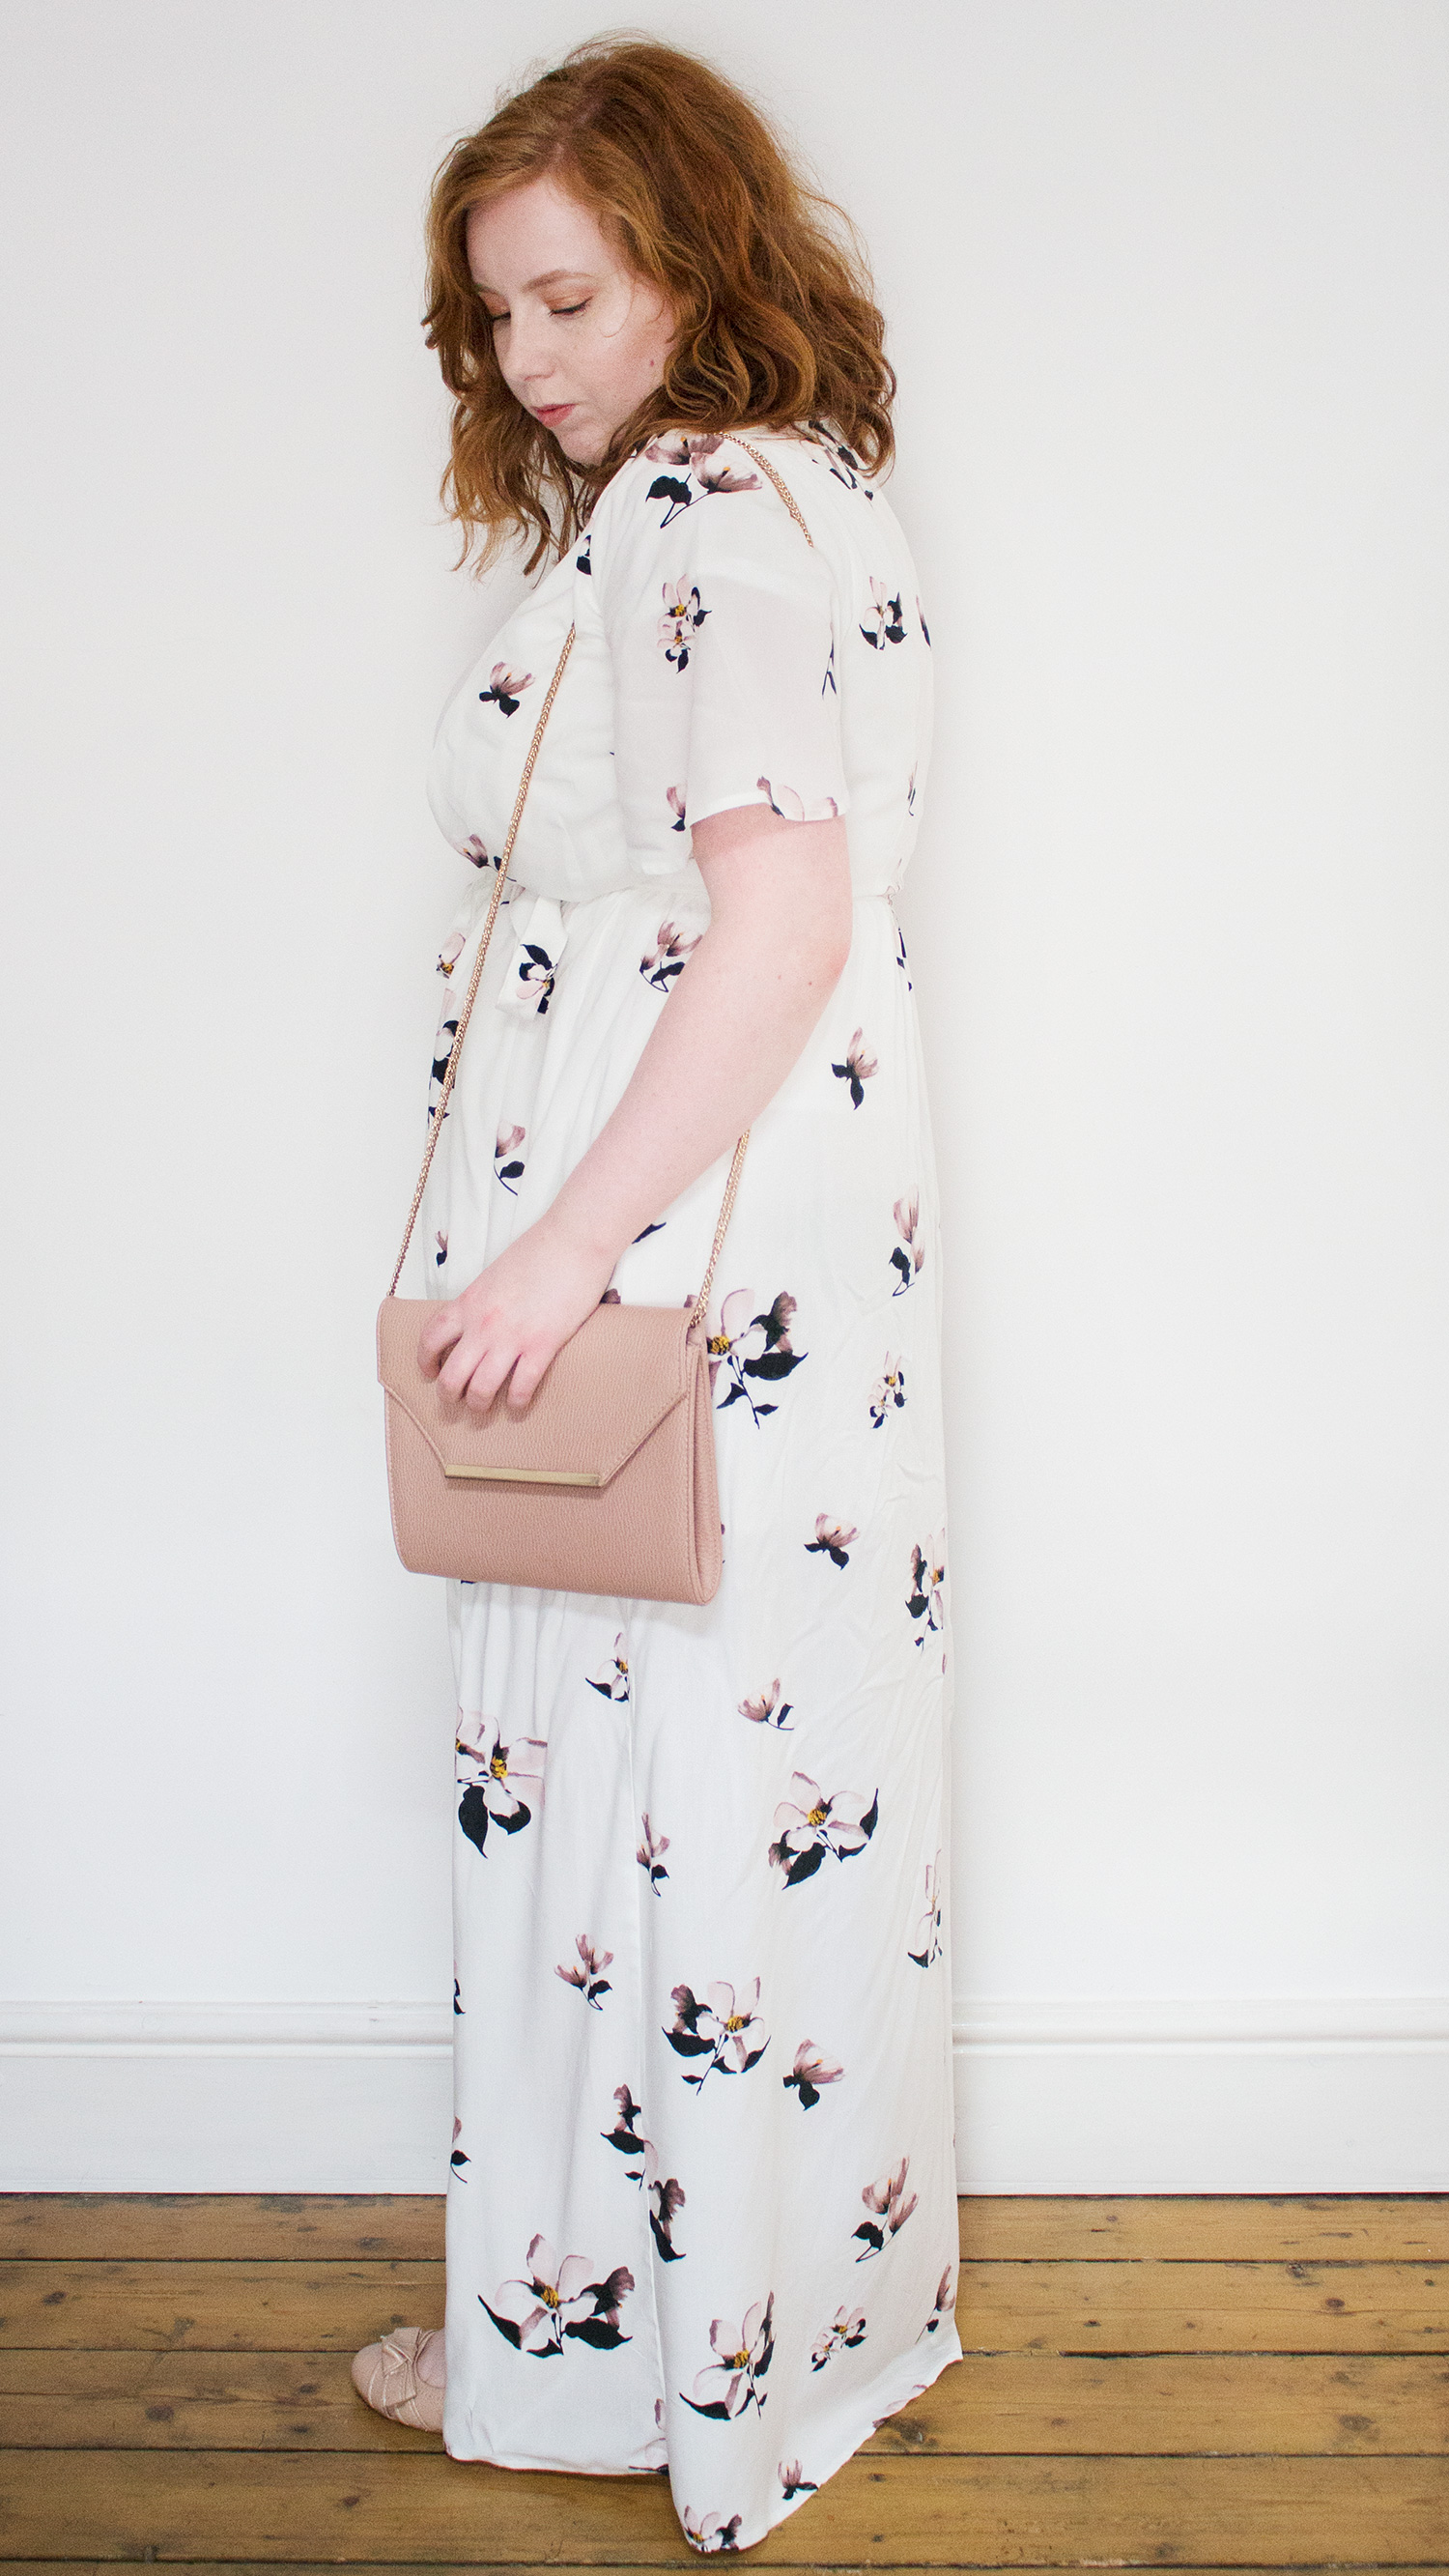 Woman in white floral maxi dress